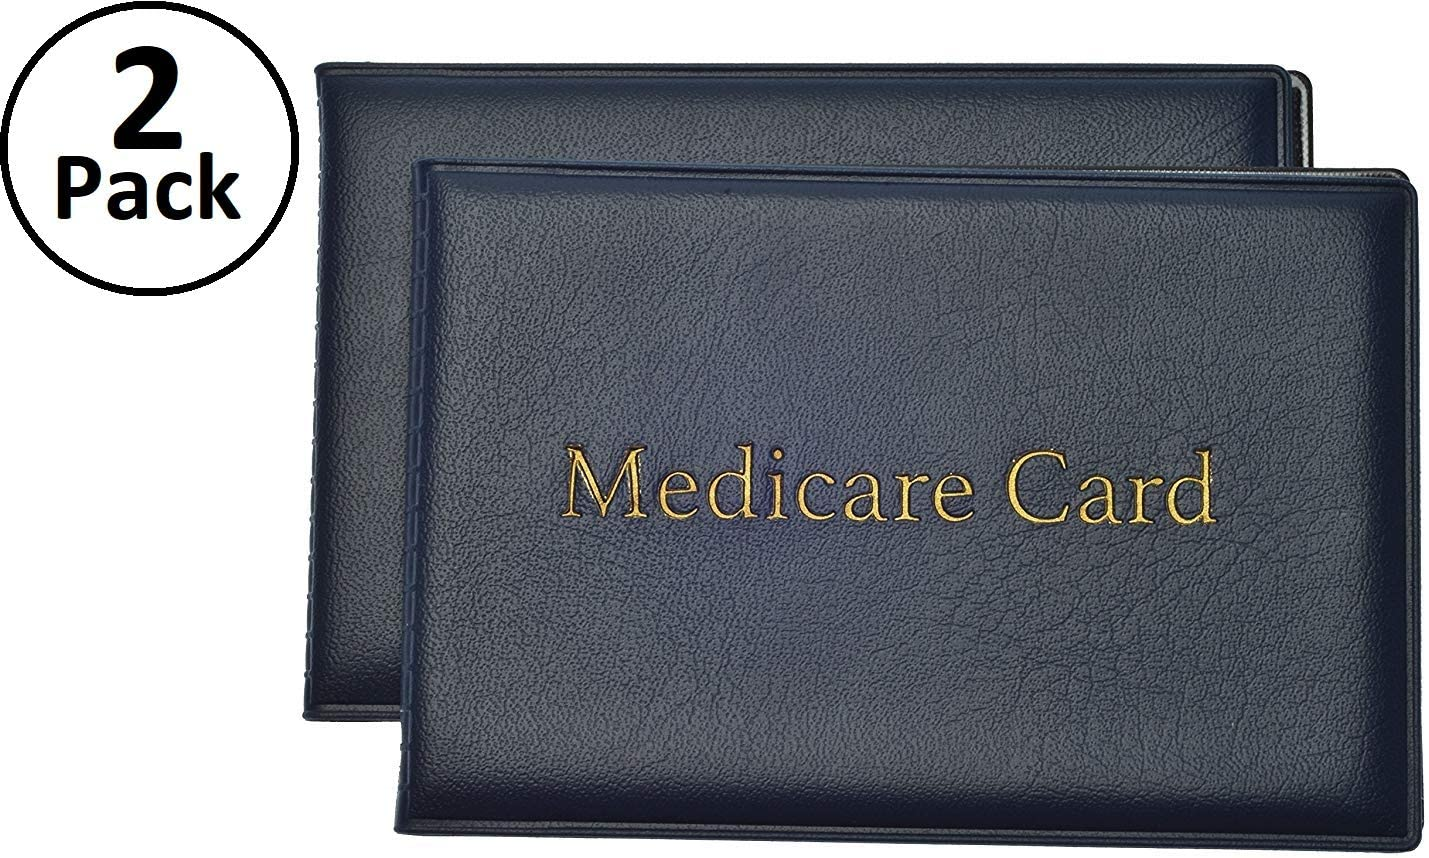 Medicare, Social Security Card Protector with 2 Clear Card Sleeves - Holds Medical Prescriptions, Social Security Card, Driver License, Health Insurance, ID, Credit Card Holders, Blue, 2 Pack